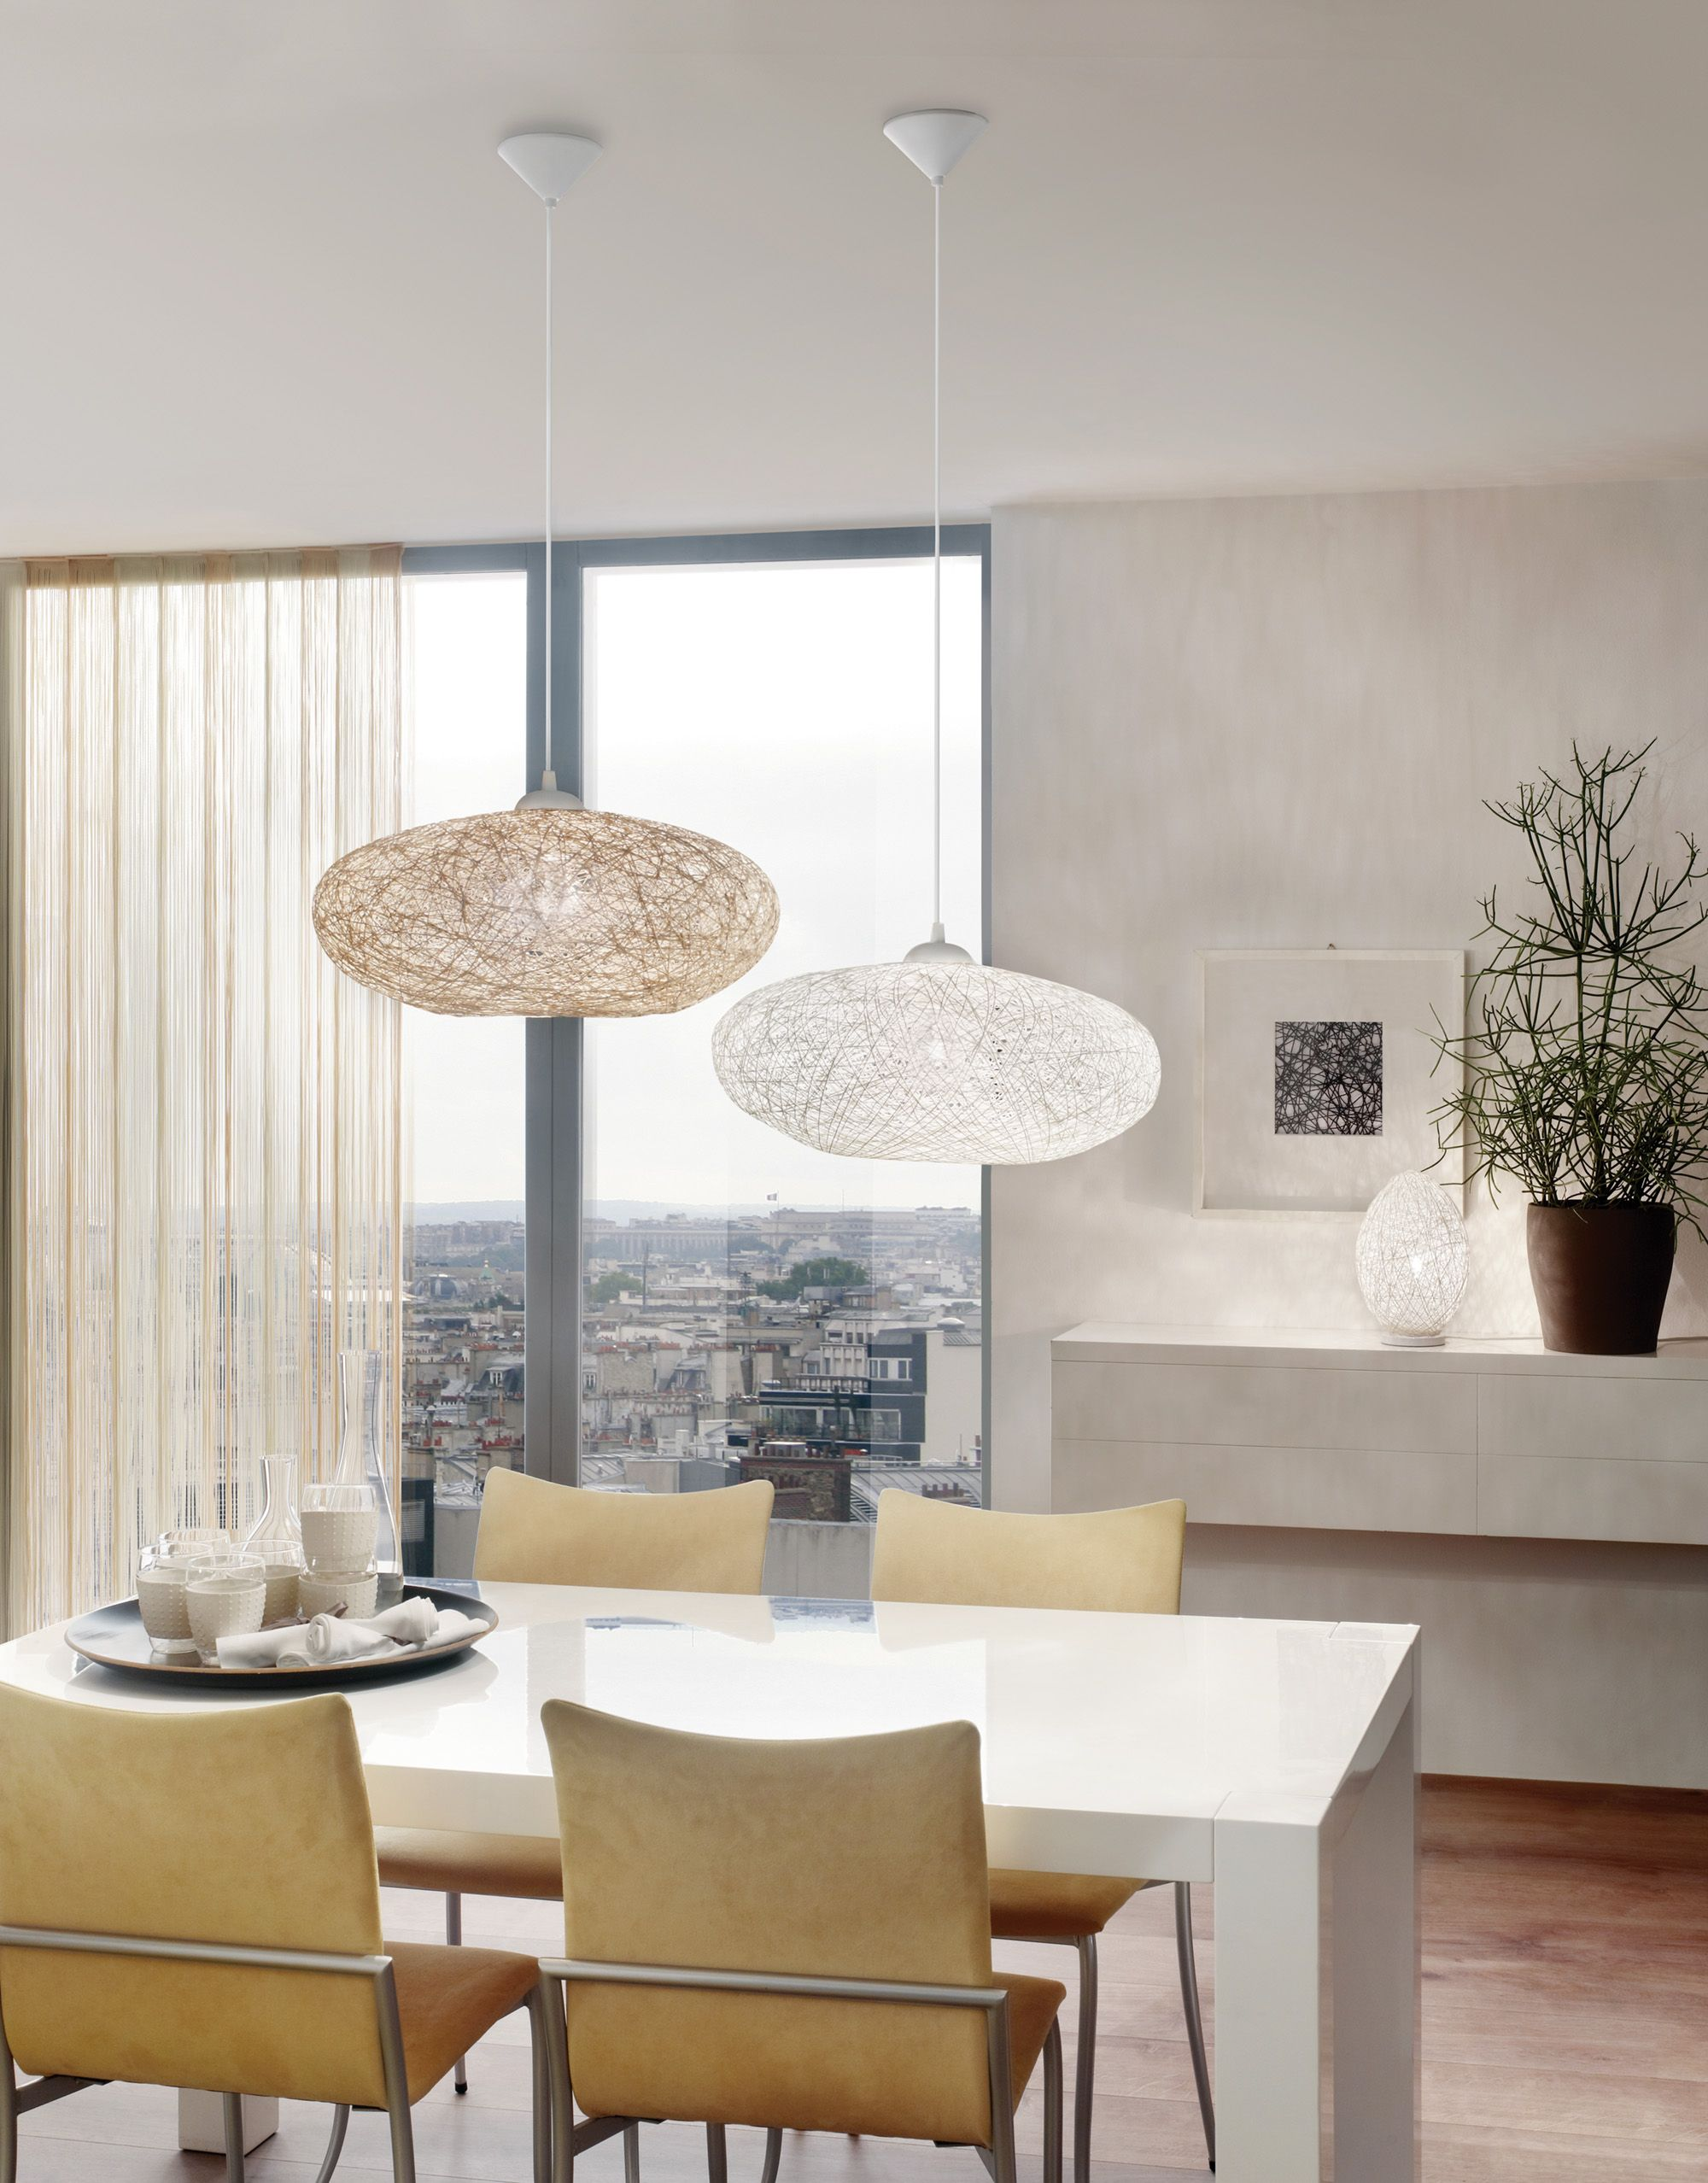 Eglo Esszimmerlampe Eglo Campilo Family With Pendant Lamps 93373 And 93374 And Table